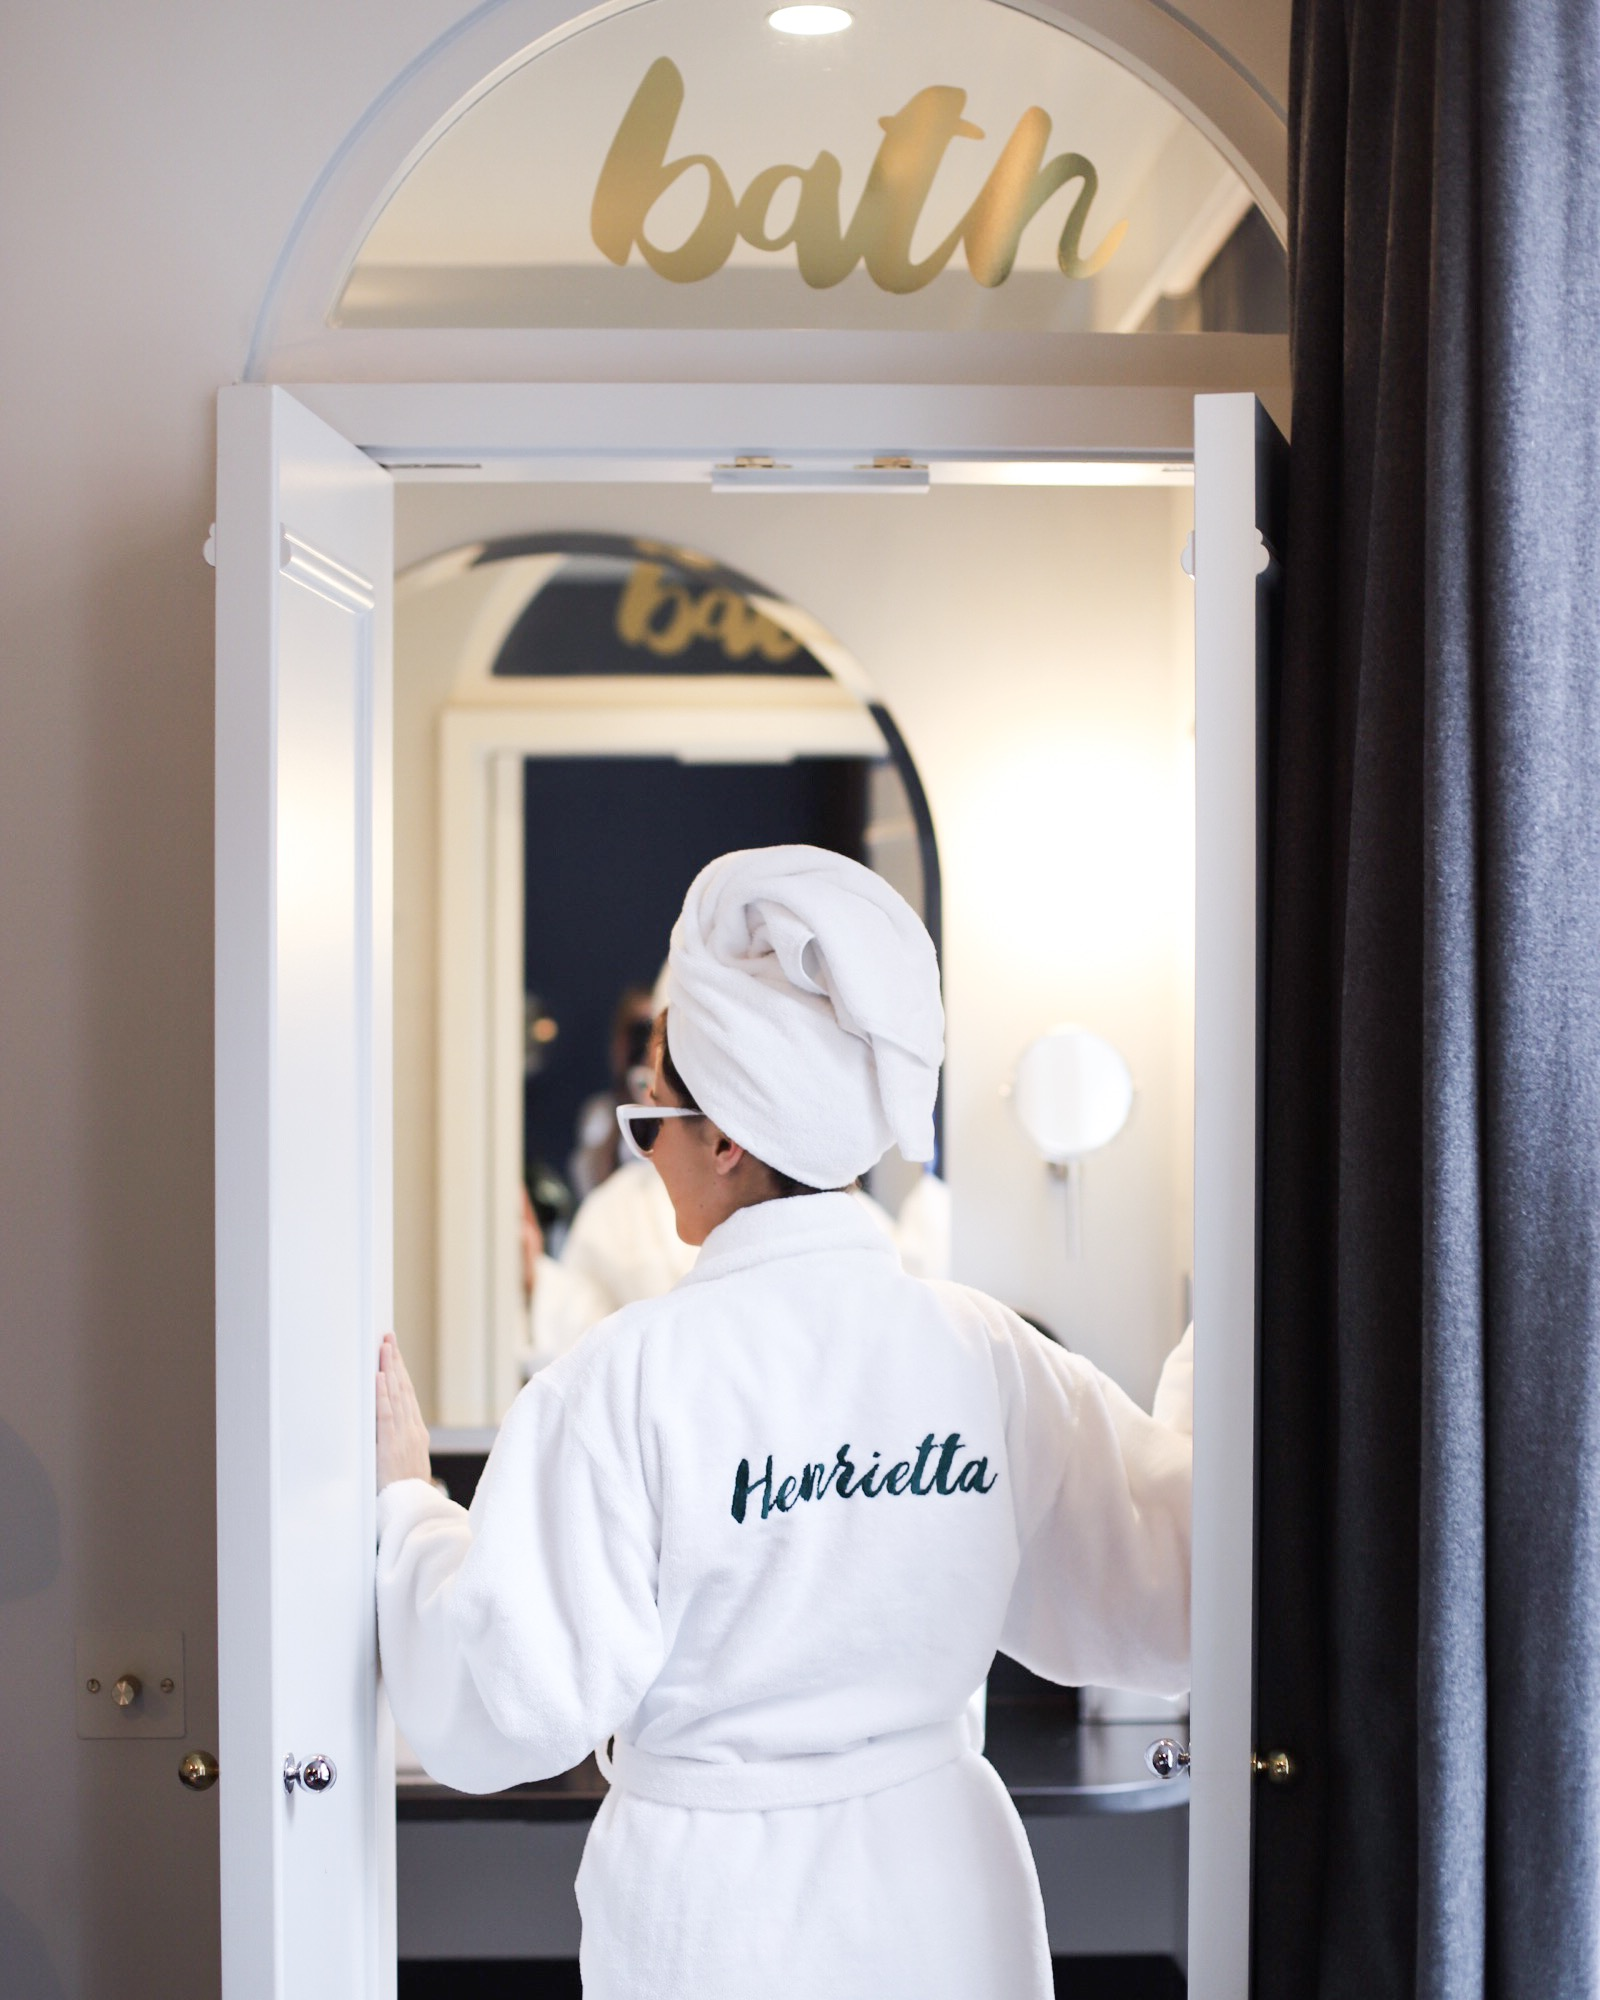 Henrietta Hotel, Covent Garden, Eat Life With Style, hôtel, londres